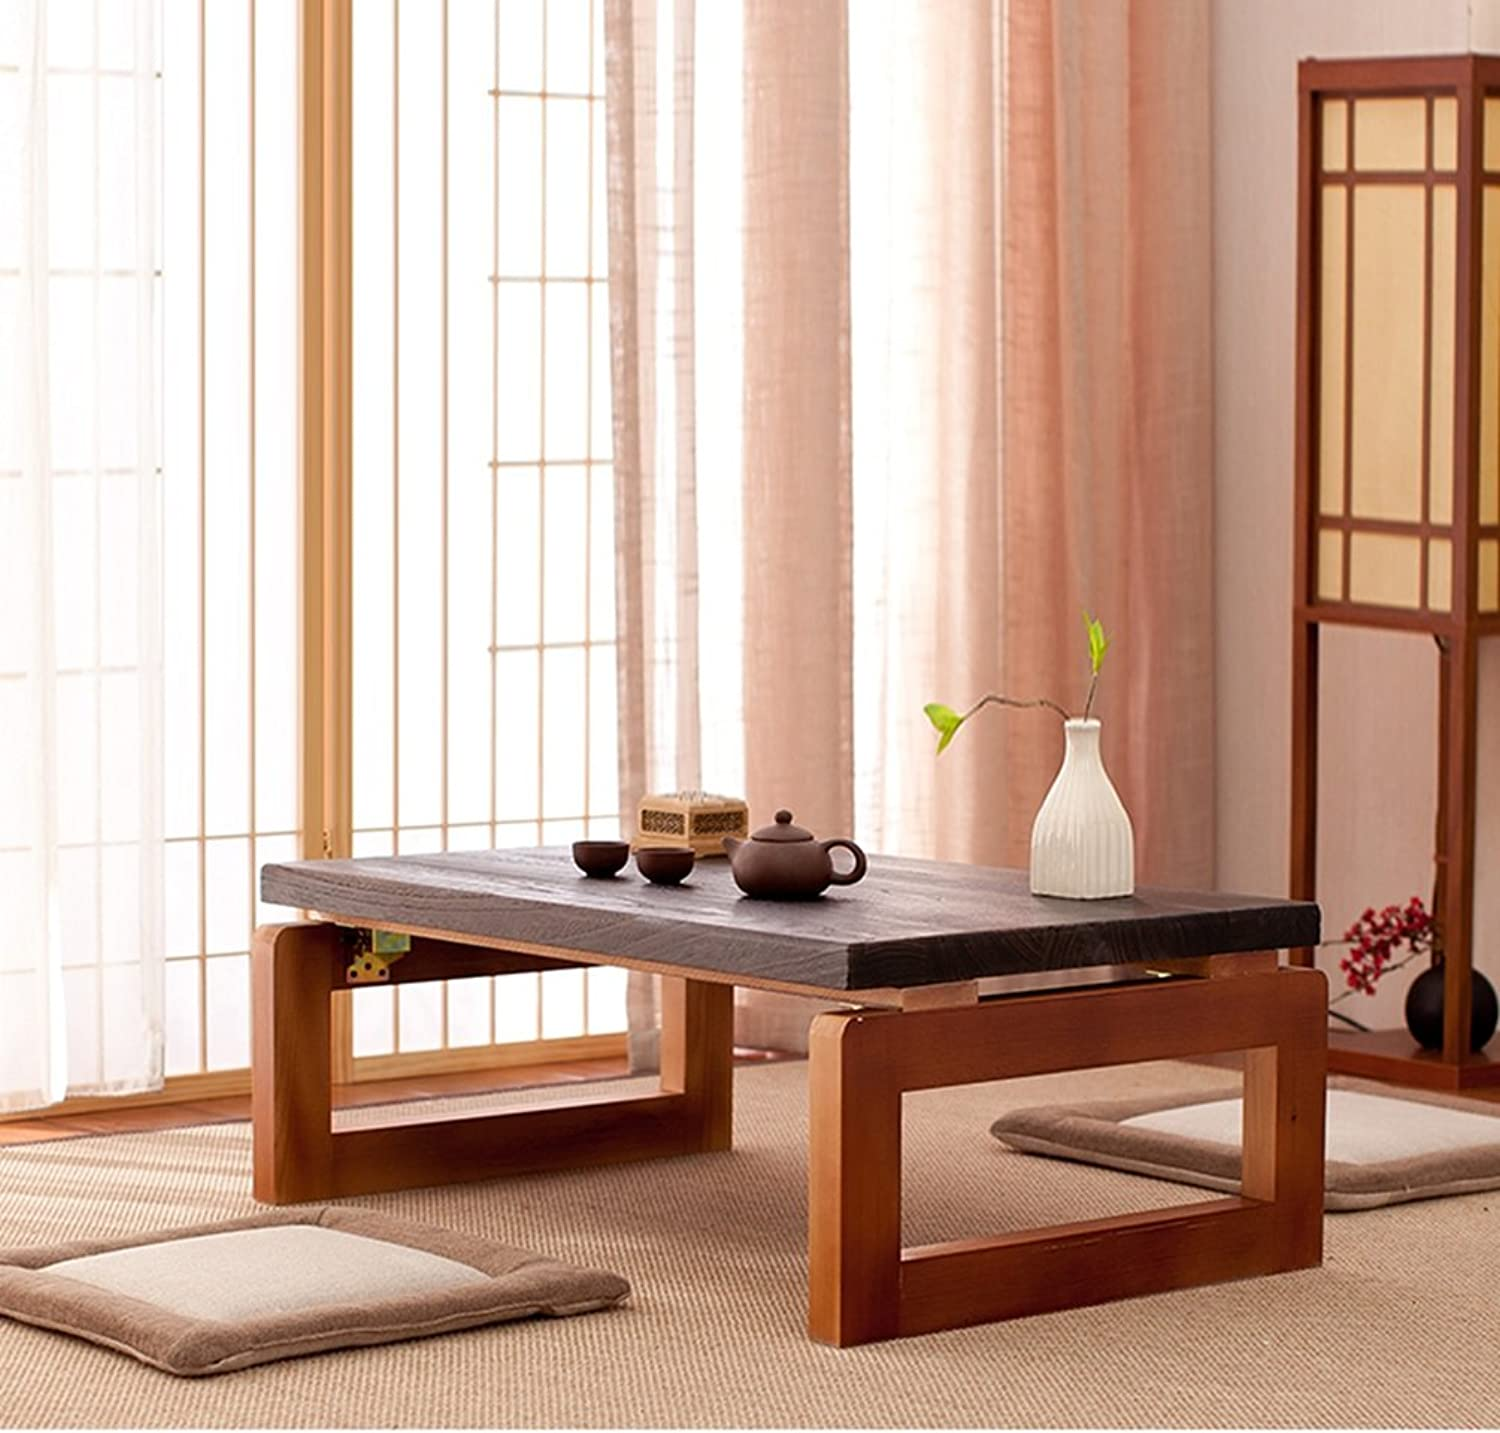 LXYFMS Solid Wood Tatami Table Tatami Coffee Table Floating Window Table Night Tatami Table Tatami Tea Table Floating Wooden Table Frame Folding Table (color    2, Size   60  40  30CM)